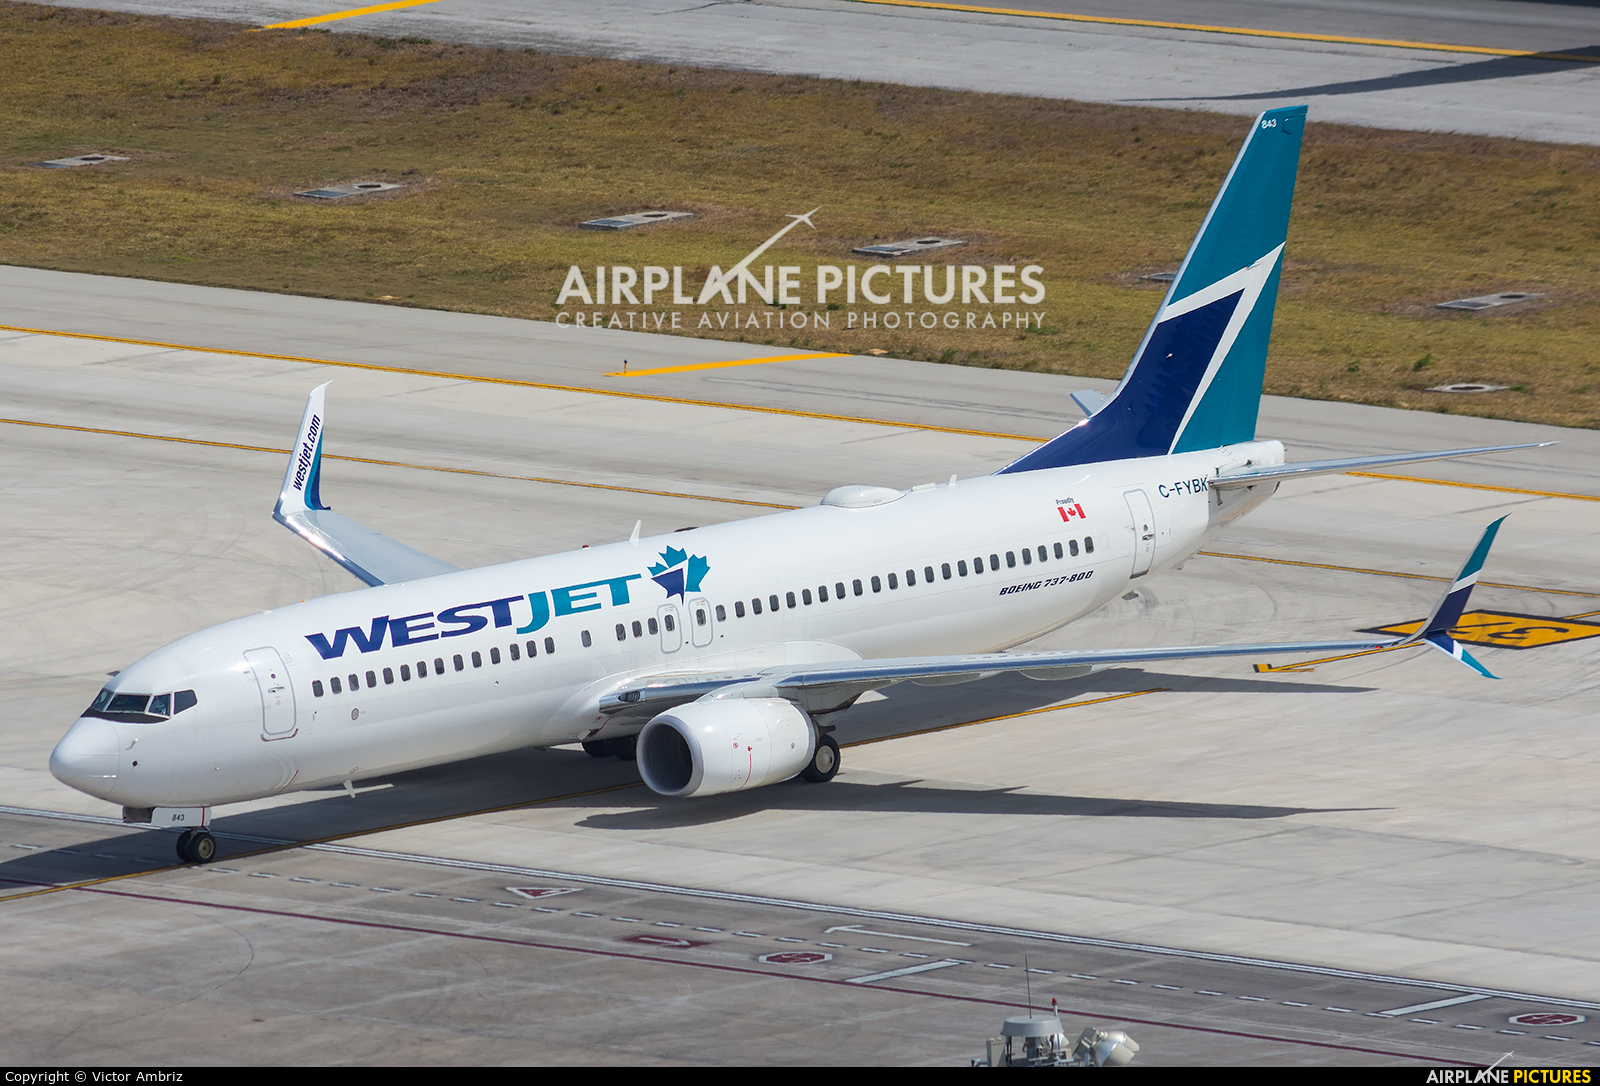 WestJet Airlines C-FYBK aircraft at Cancun Intl